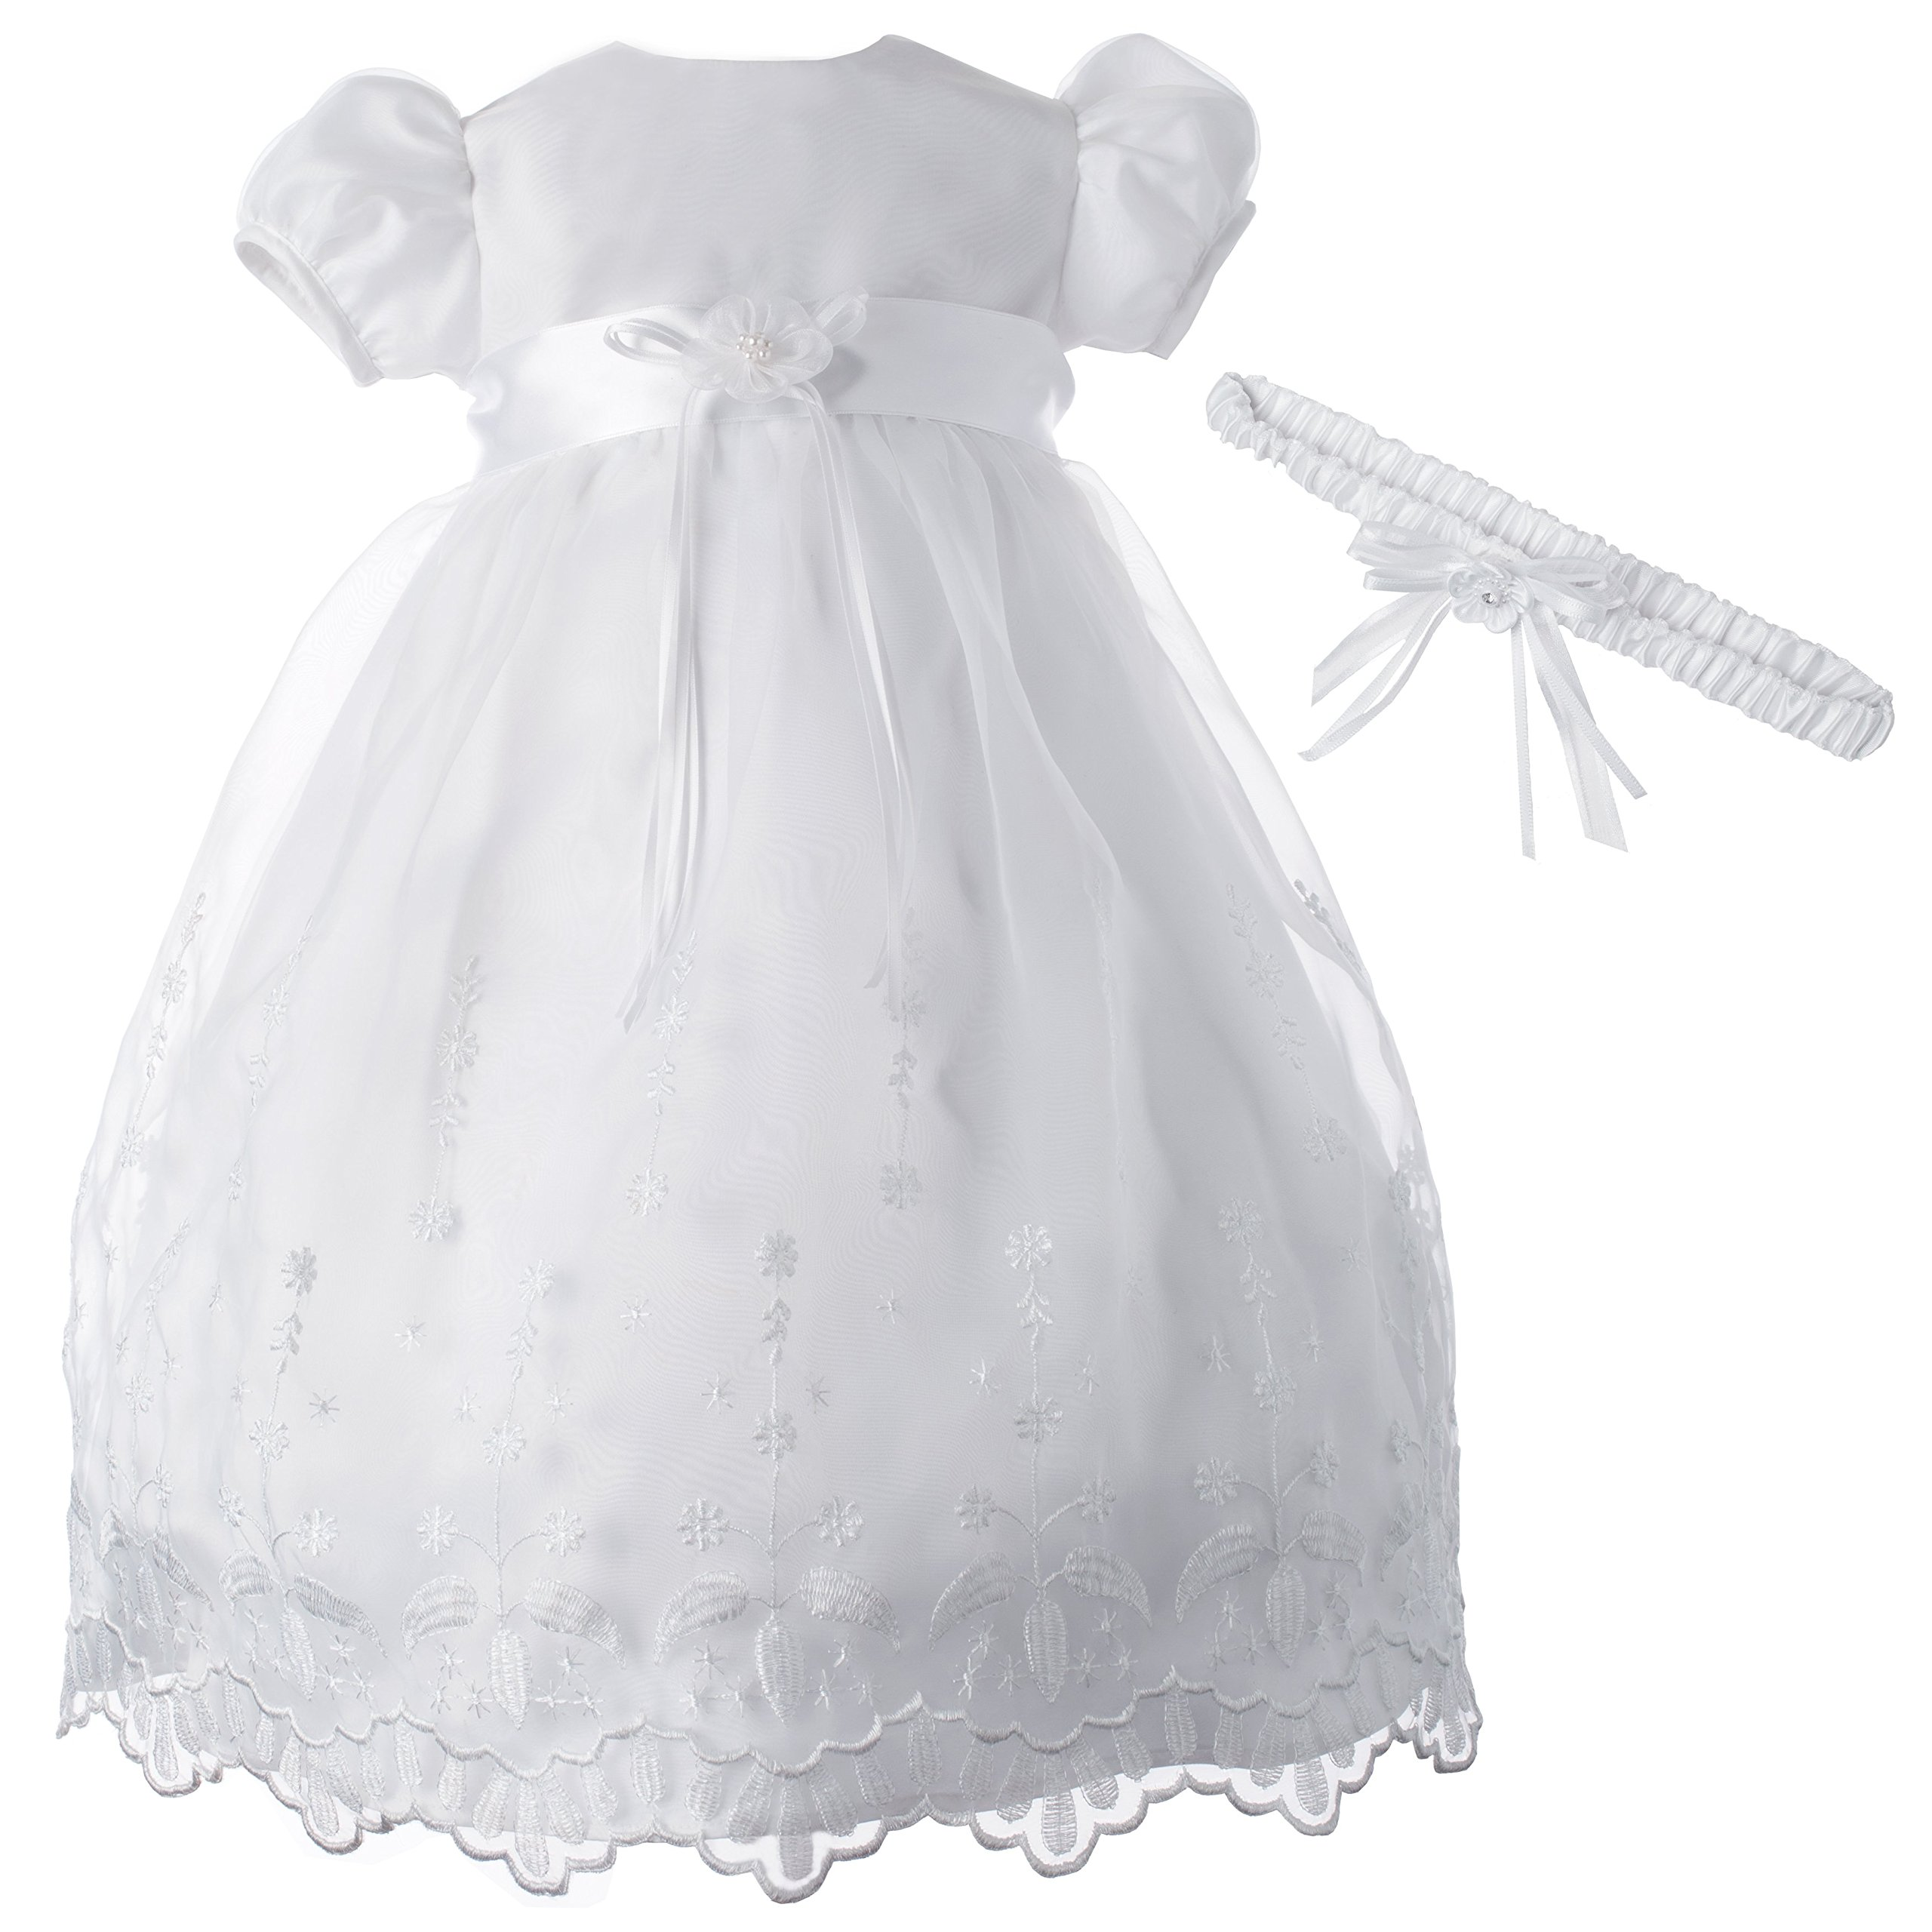 25e3b747ba10 Lauren Madison Baby-Girls Newborn Satin Floral Embroidered Dress Gown Outfit  product image